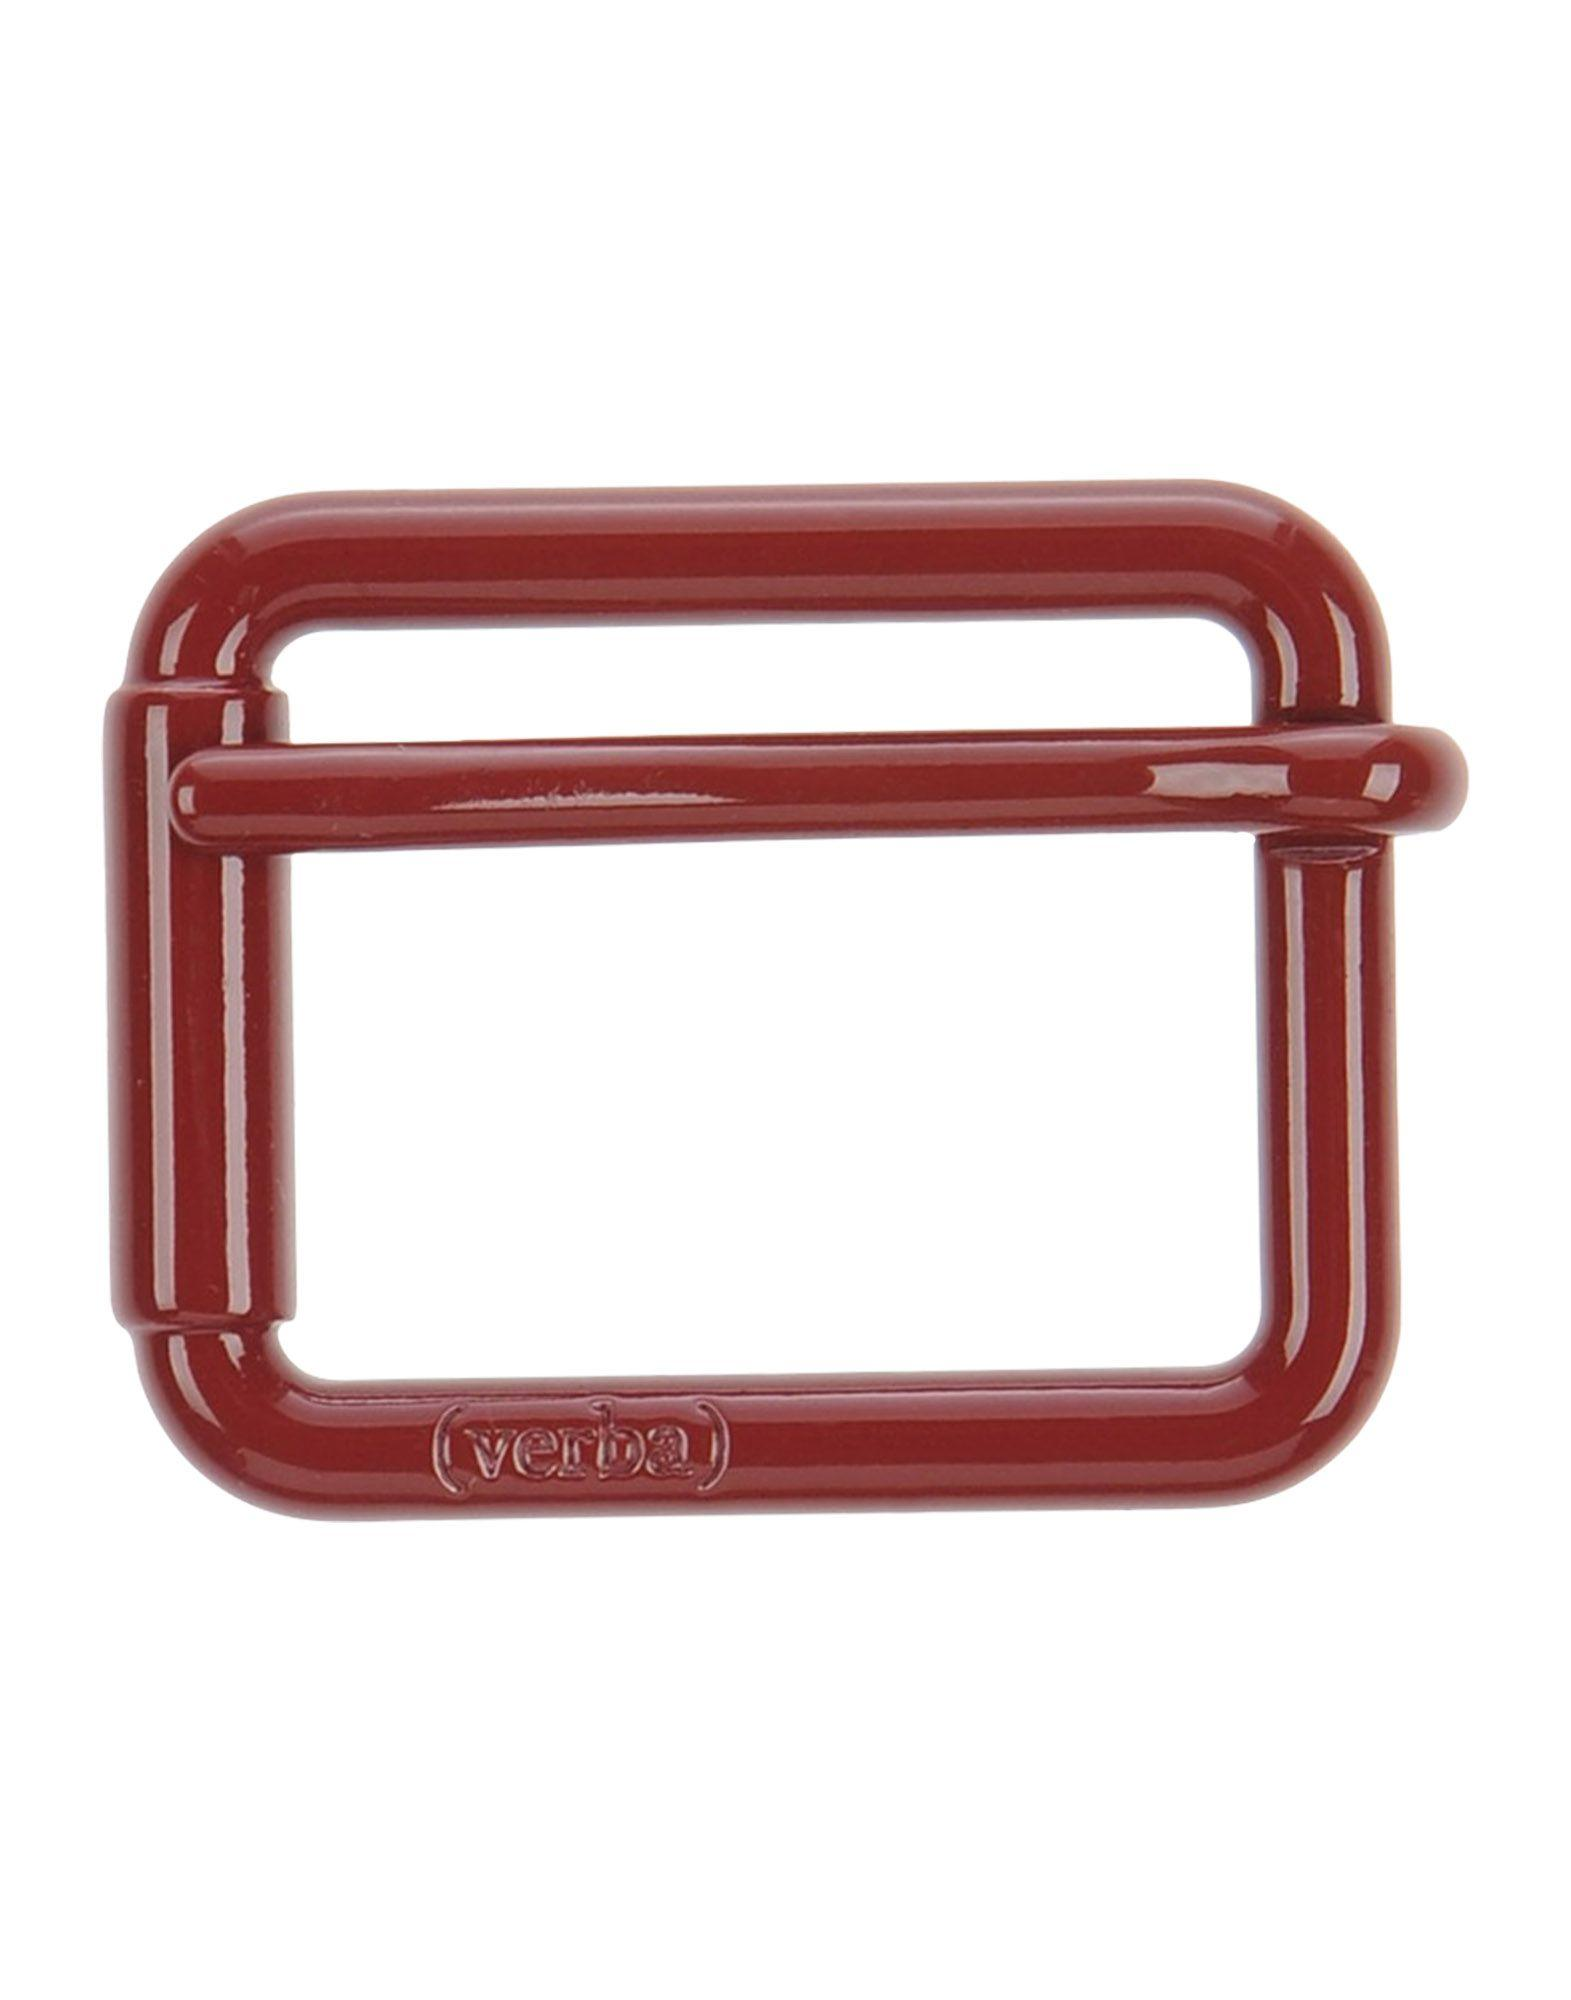 Verba (  ) Belt Buckles In Brick Red